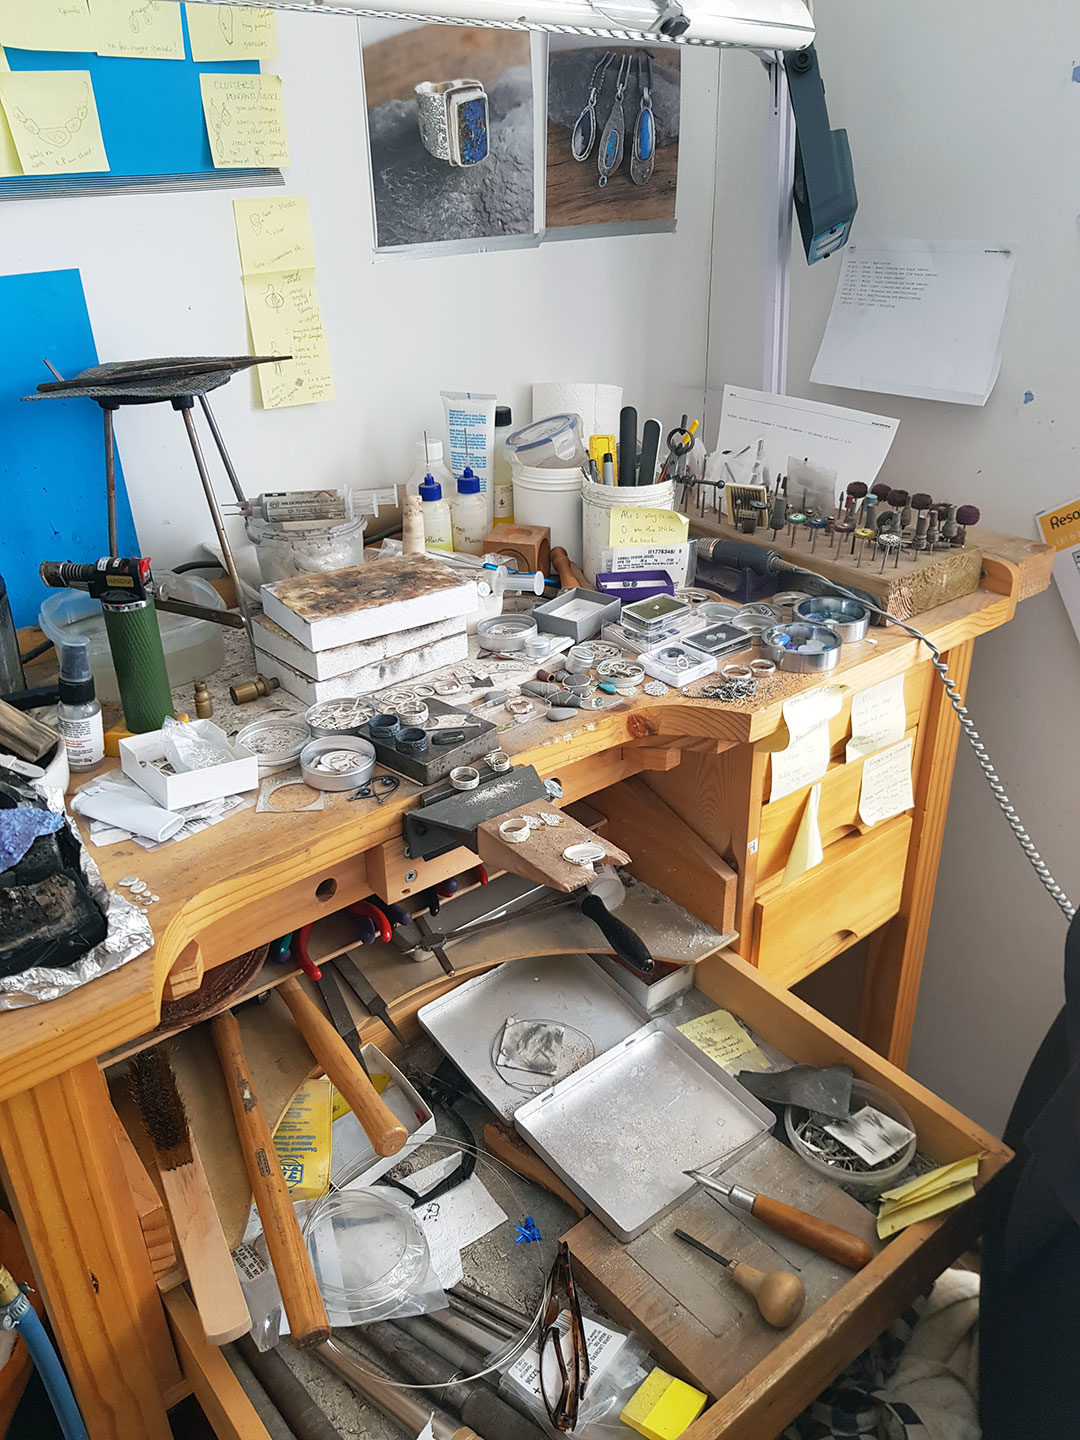 Bench mess or creative space?